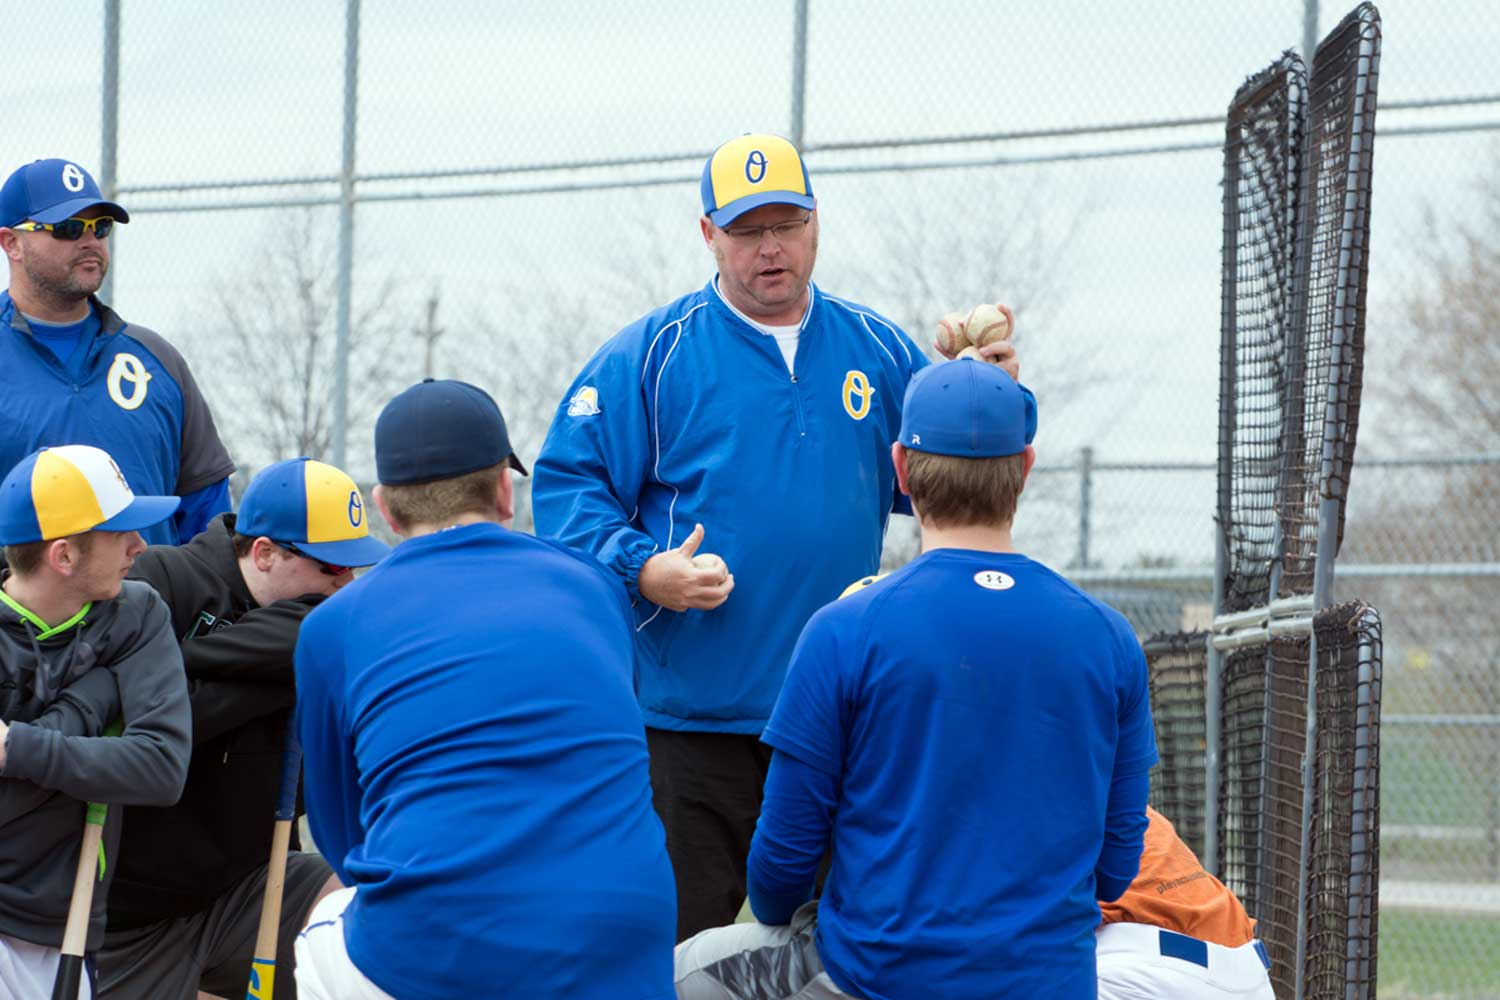 U18 head coach and manager Daryl Macklem gives some pointers to his team during a recent practice at Ritson Field. The elite club opens their season on May 3 against Mississauga.